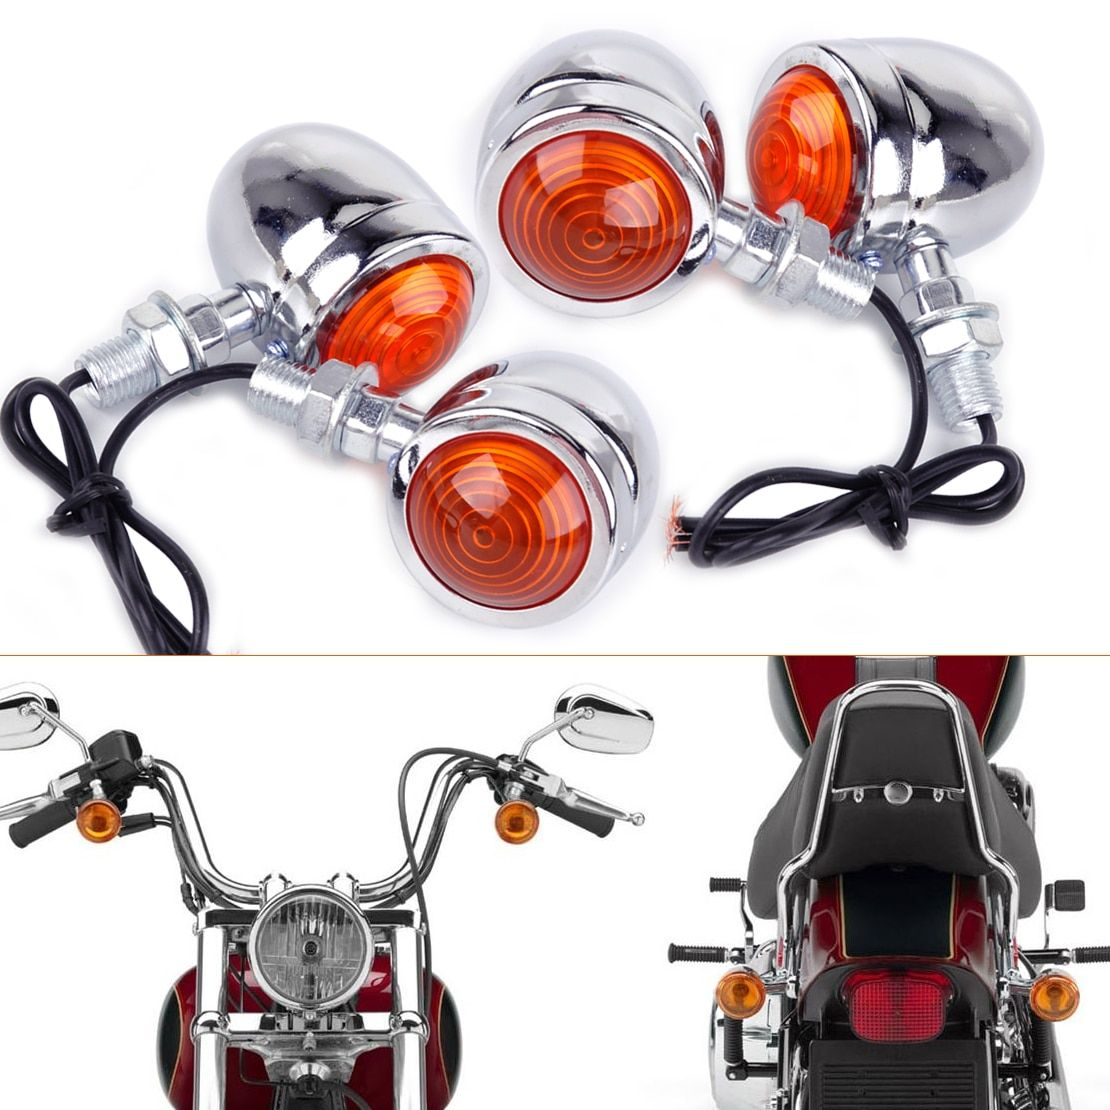 beler New 4pcs Silver Chrome Plate Bullet Turn Signal Lights Indicator Lamp Fit for Motorcycle Harley Dirt Bike Honda Guzzi